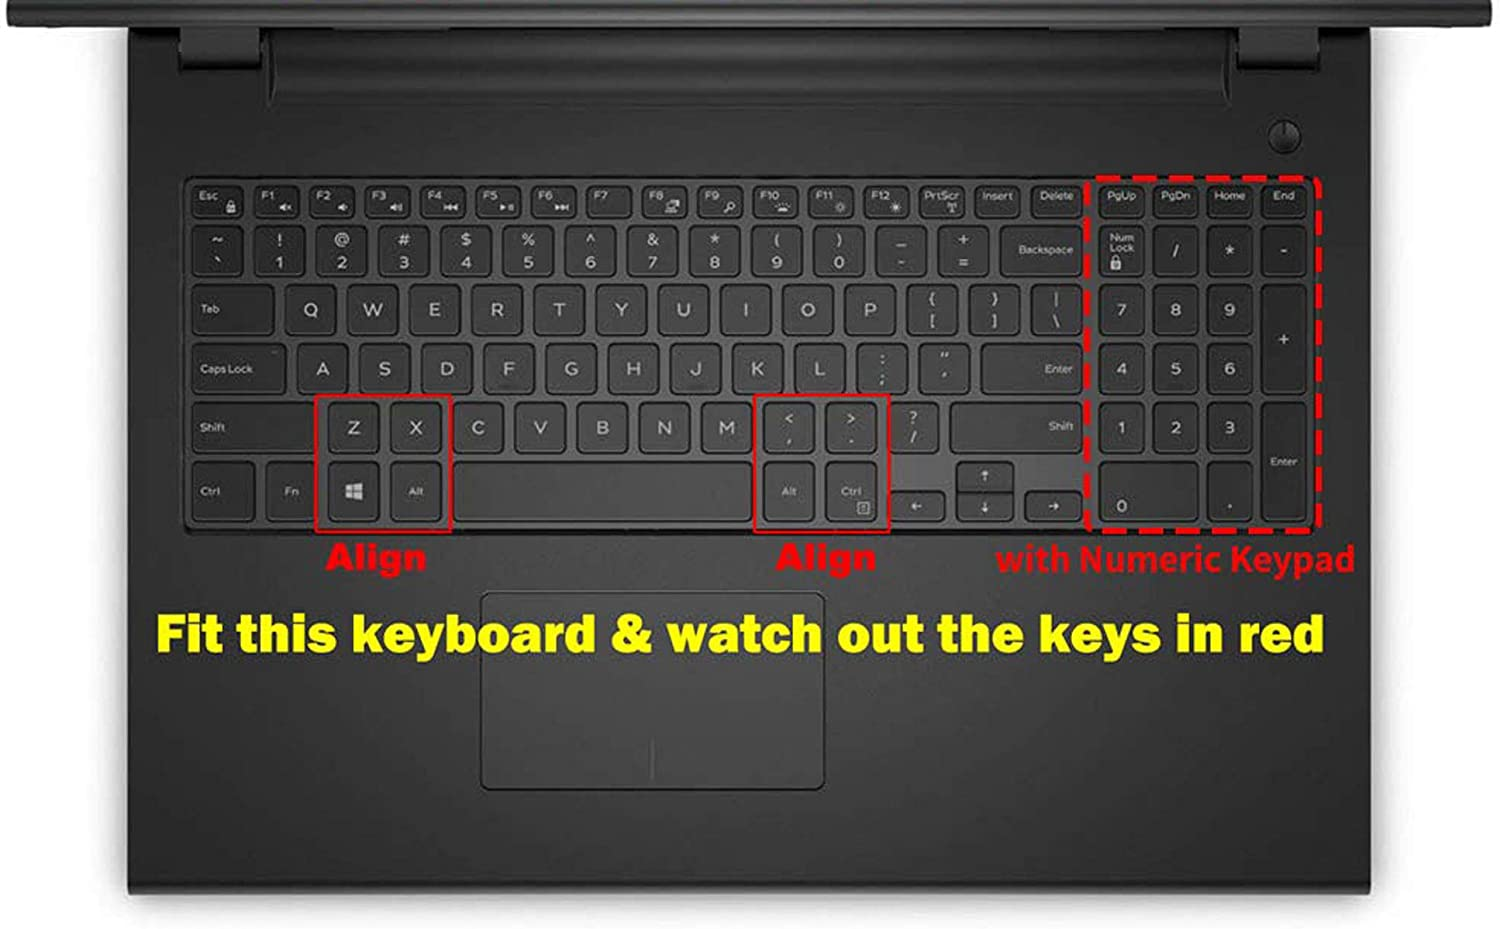 Saco Keyboard Protector Silicone Skin Cover for Dell Vostro 15 3558 15.6-inch Laptop Transparent